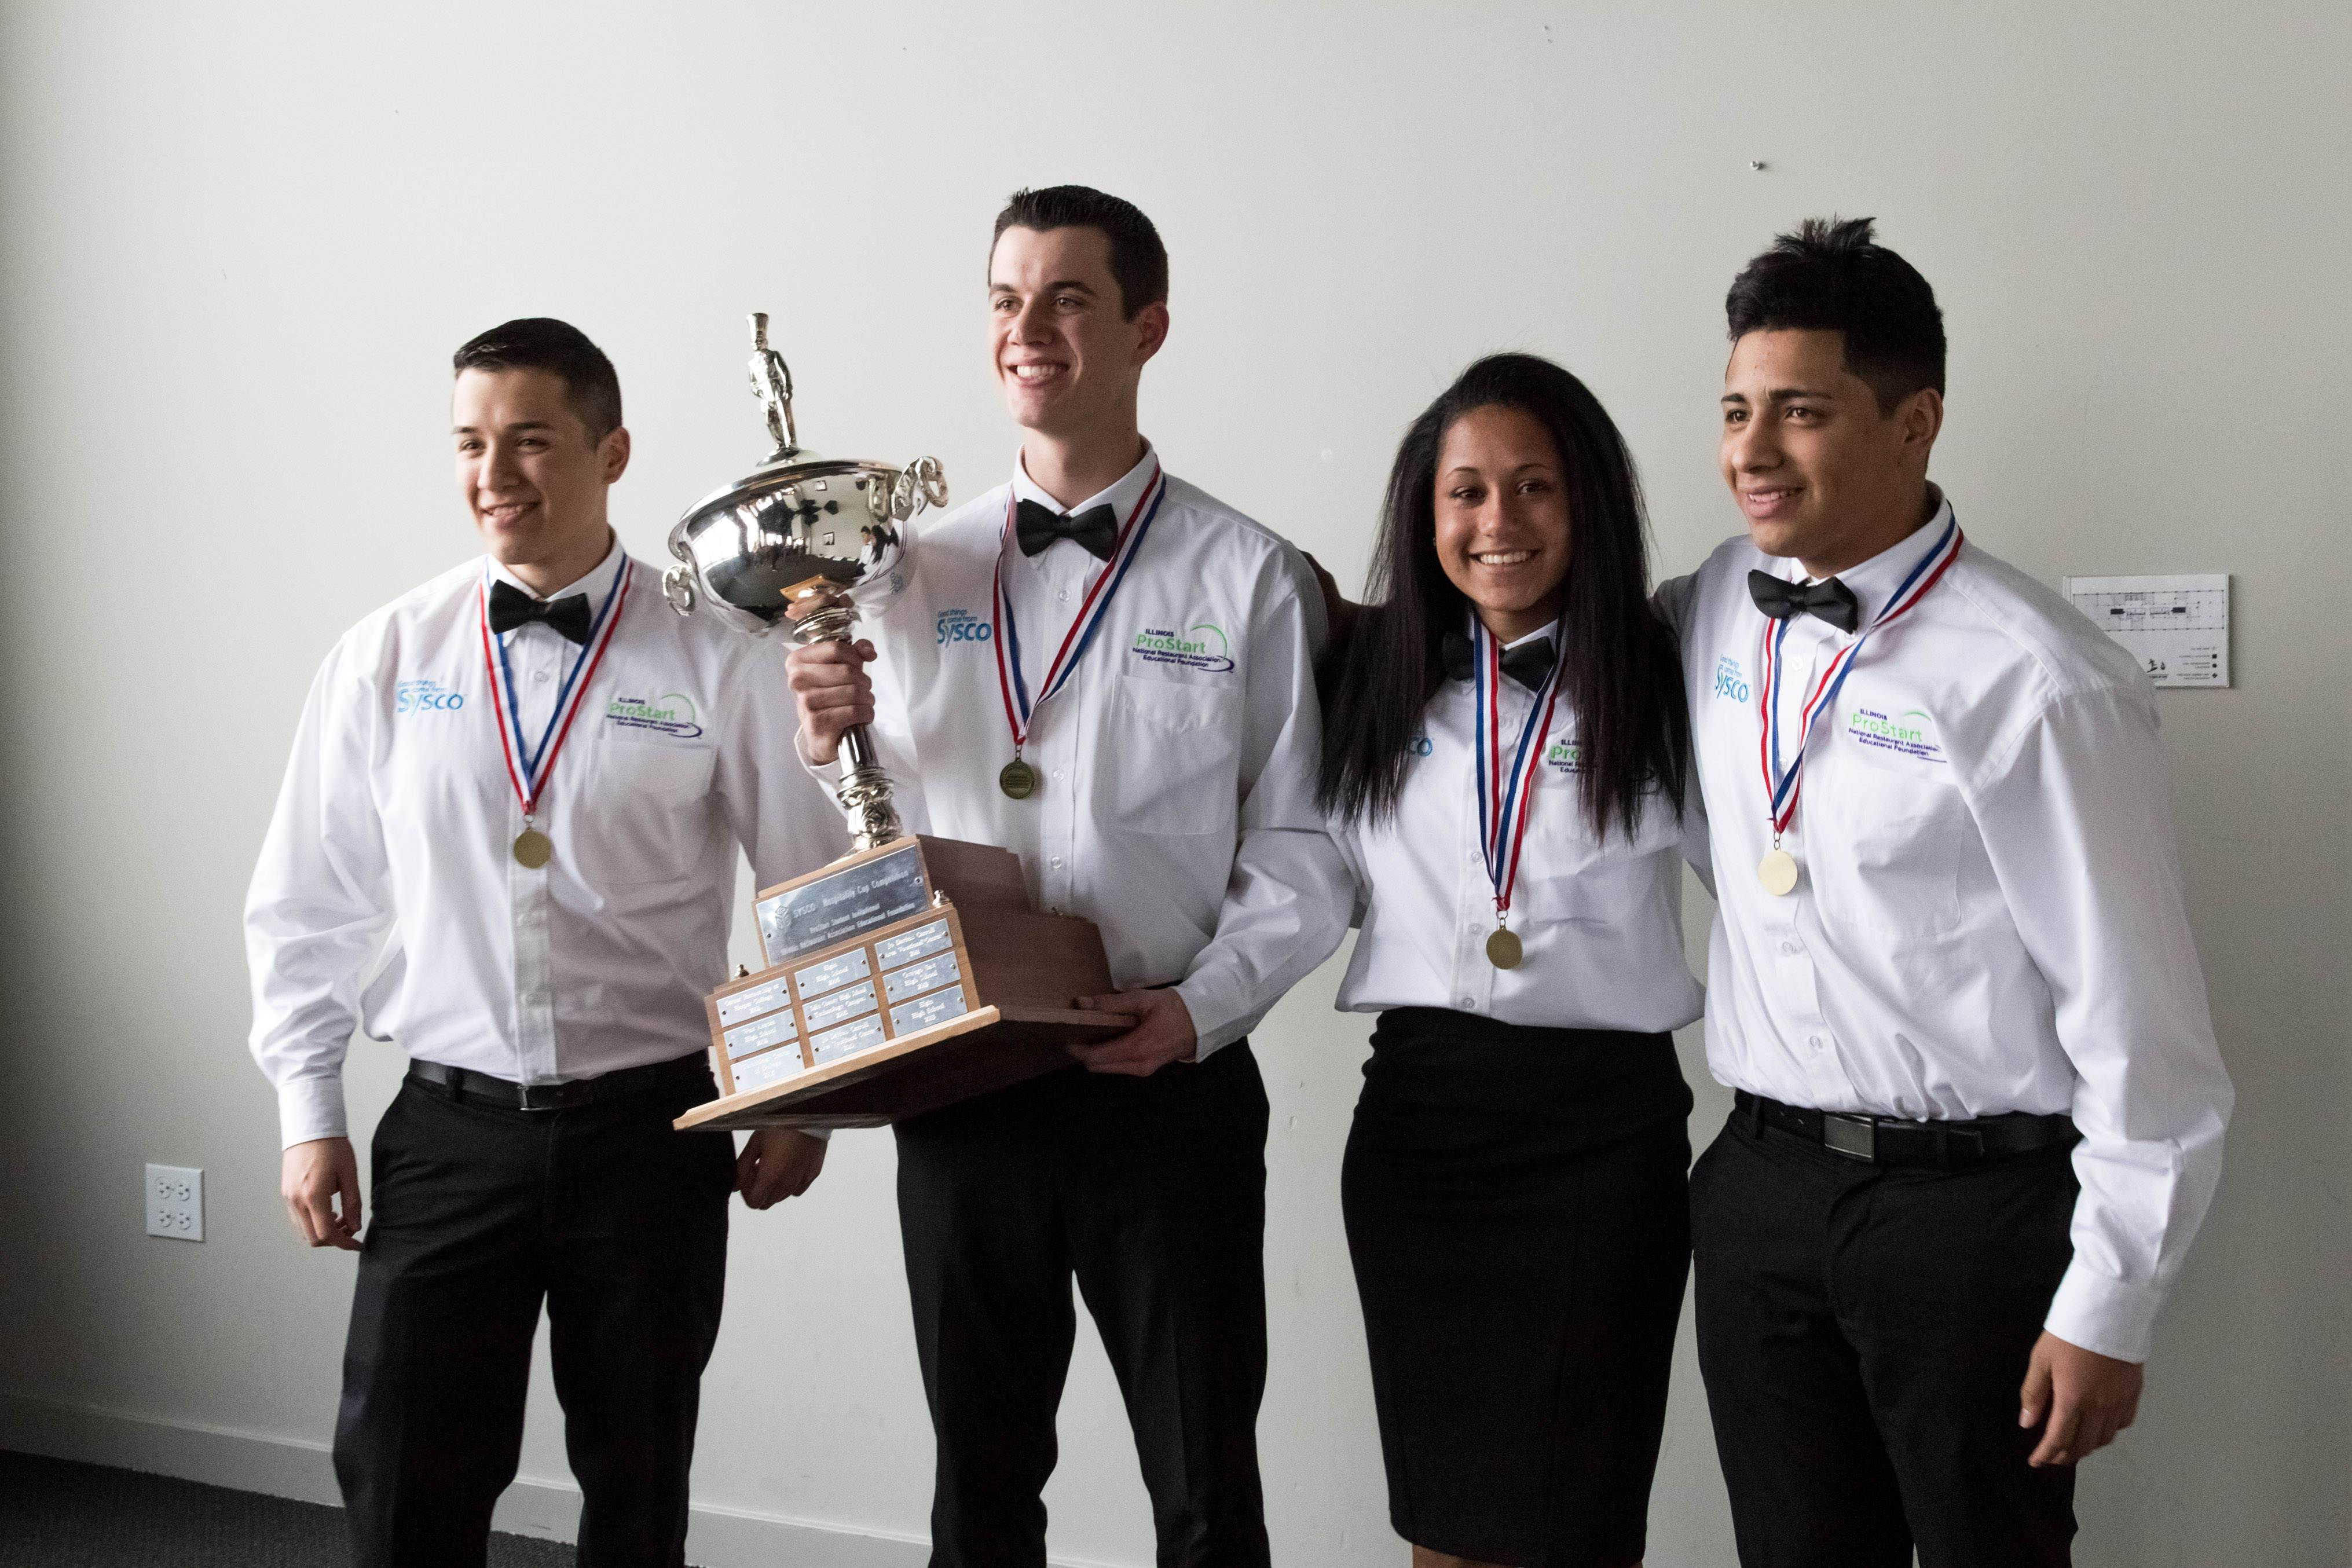 The Elgin High Clumsy Chefs restaurant management team put together a winning restaurant concept that earned first place Feb. 8 in the Illinois ProStart Competition in Chicago. Students, from left, Eduardo Rios, Colin Flanagan, Yahaira Bonilla and Luis Maldonado show their first-place trophy.